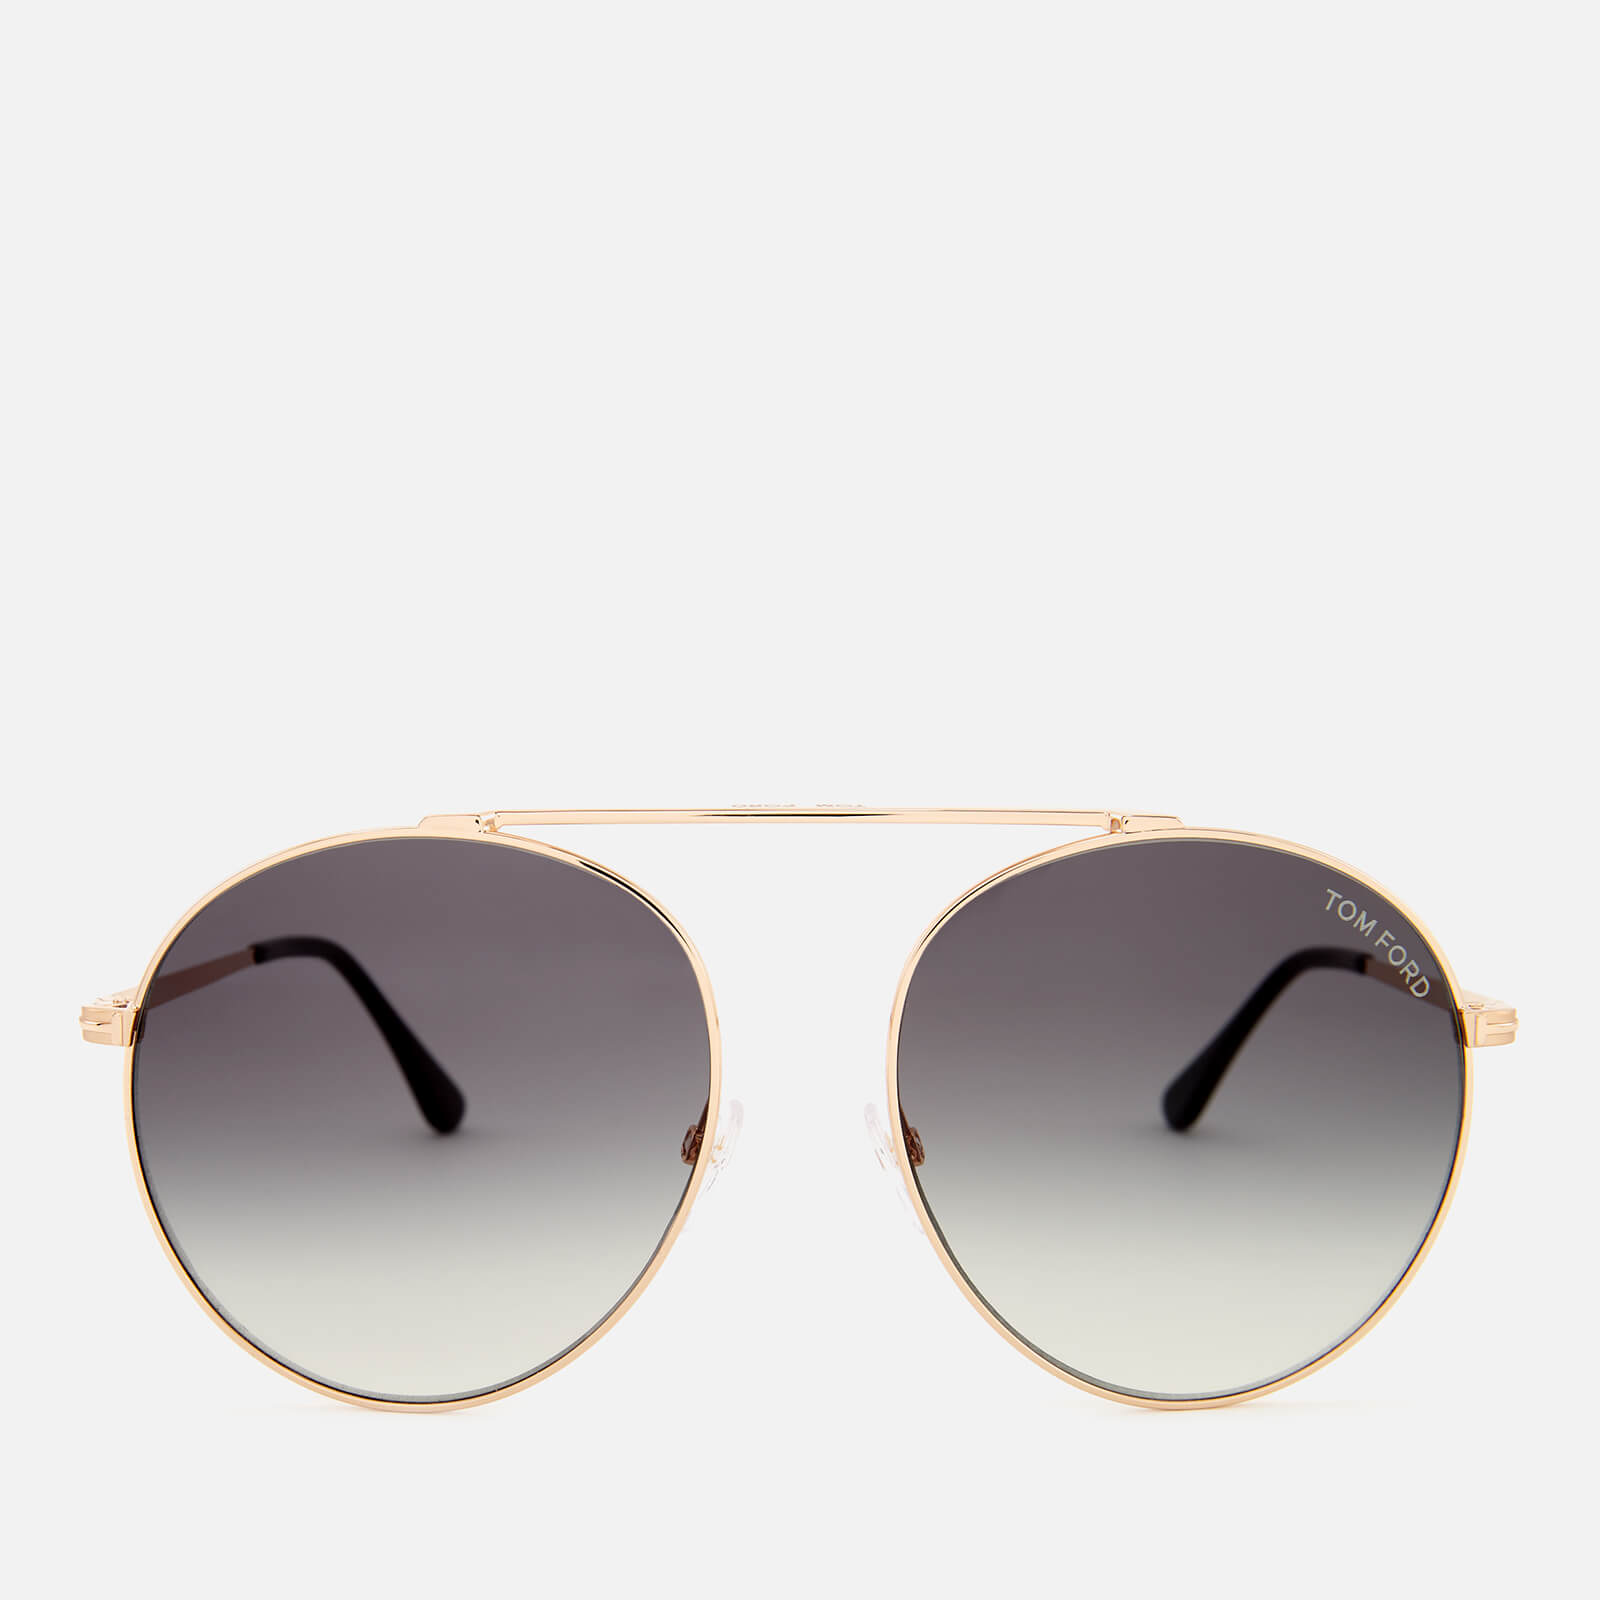 1bf74e4263 Tom Ford Women s Simone Aviator Style Sunglasses - Rose Gold Gradient Smoke  - Free UK Delivery over £50